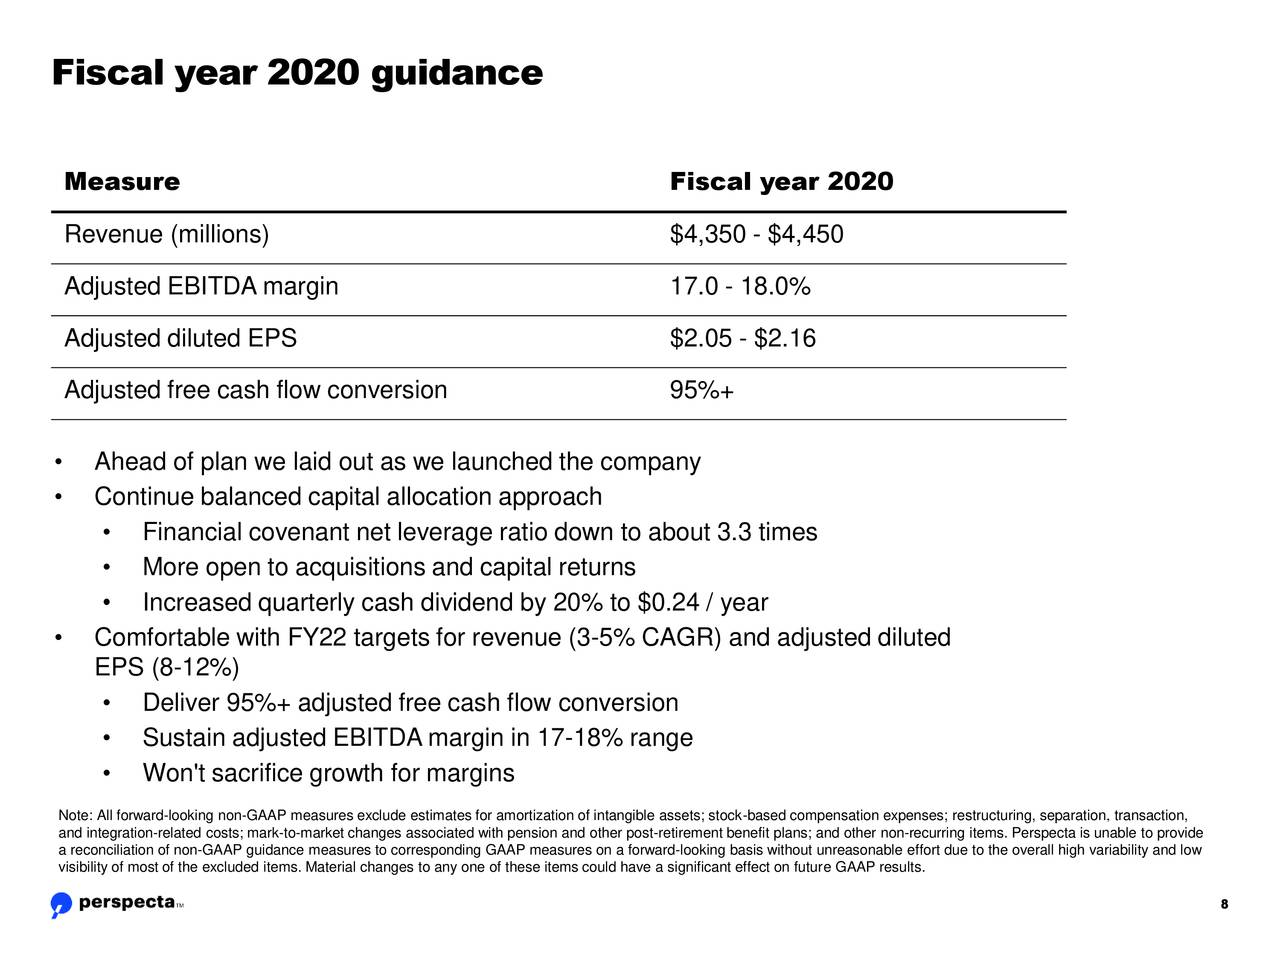 Measure Fiscal year 2020 Revenue (millions) $4,350 - $4,450 Adjusted EBITDA margin 17.0 - 18.0% Adjusted diluted EPS $2.05 - $2.16 Adjusted free cash flow conversion 95%+ • Ahead of plan we laid out as we launched the company • Continue balanced capital allocation approach • Financial covenant net leverage ratio down to about 3.3 times • More open to acquisitions and capital returns • Increased quarterly cash dividend by 20% to $0.24 / year • Comfortable with FY22 targets for revenue (3-5% CAGR) and adjusted diluted EPS (8-12%) • Deliver 95%+ adjusted free cash flow conversion • Sustain adjusted EBITDA margin in 17-18% range • Won't sacrifice growth for margins Note: All forward-looking non-GAAP measures exclude estimates for amortization of intangible assets; stock-based compensation expenses; restructuring, separation, transaction, and integration-related costs; mark-to-market changes associated with pension and other post-retirement benefit plans; and other non-recurring items. Perspecta is unable to provide visibility of most of the excluded items. Material changes to any one of these items could have a significant effect on future GAAP results.the overall high variability and low 8